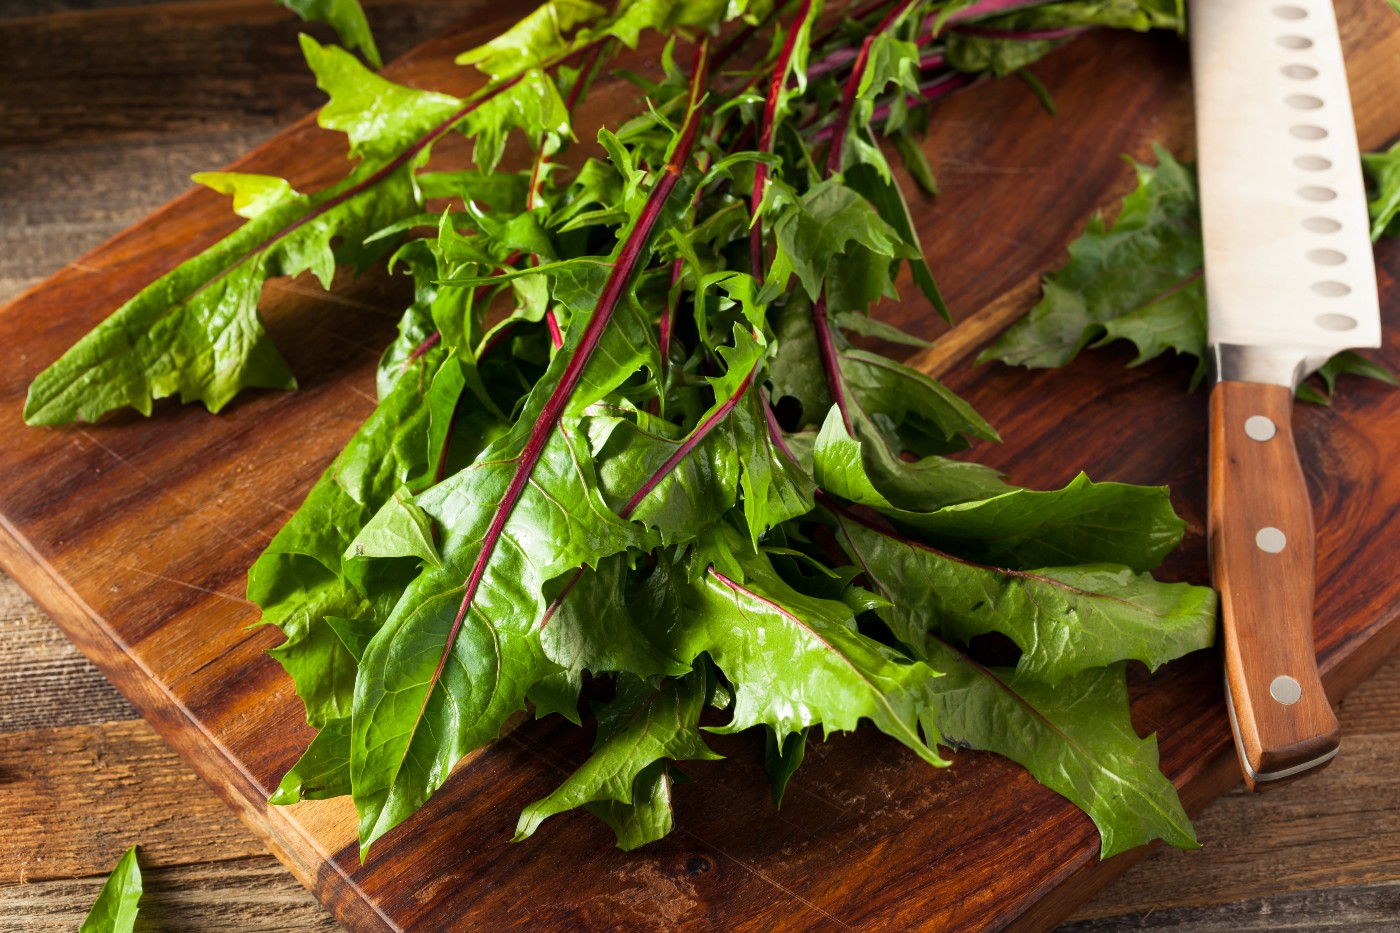 Dandelion greens with dark red spines on a wooden cutting board